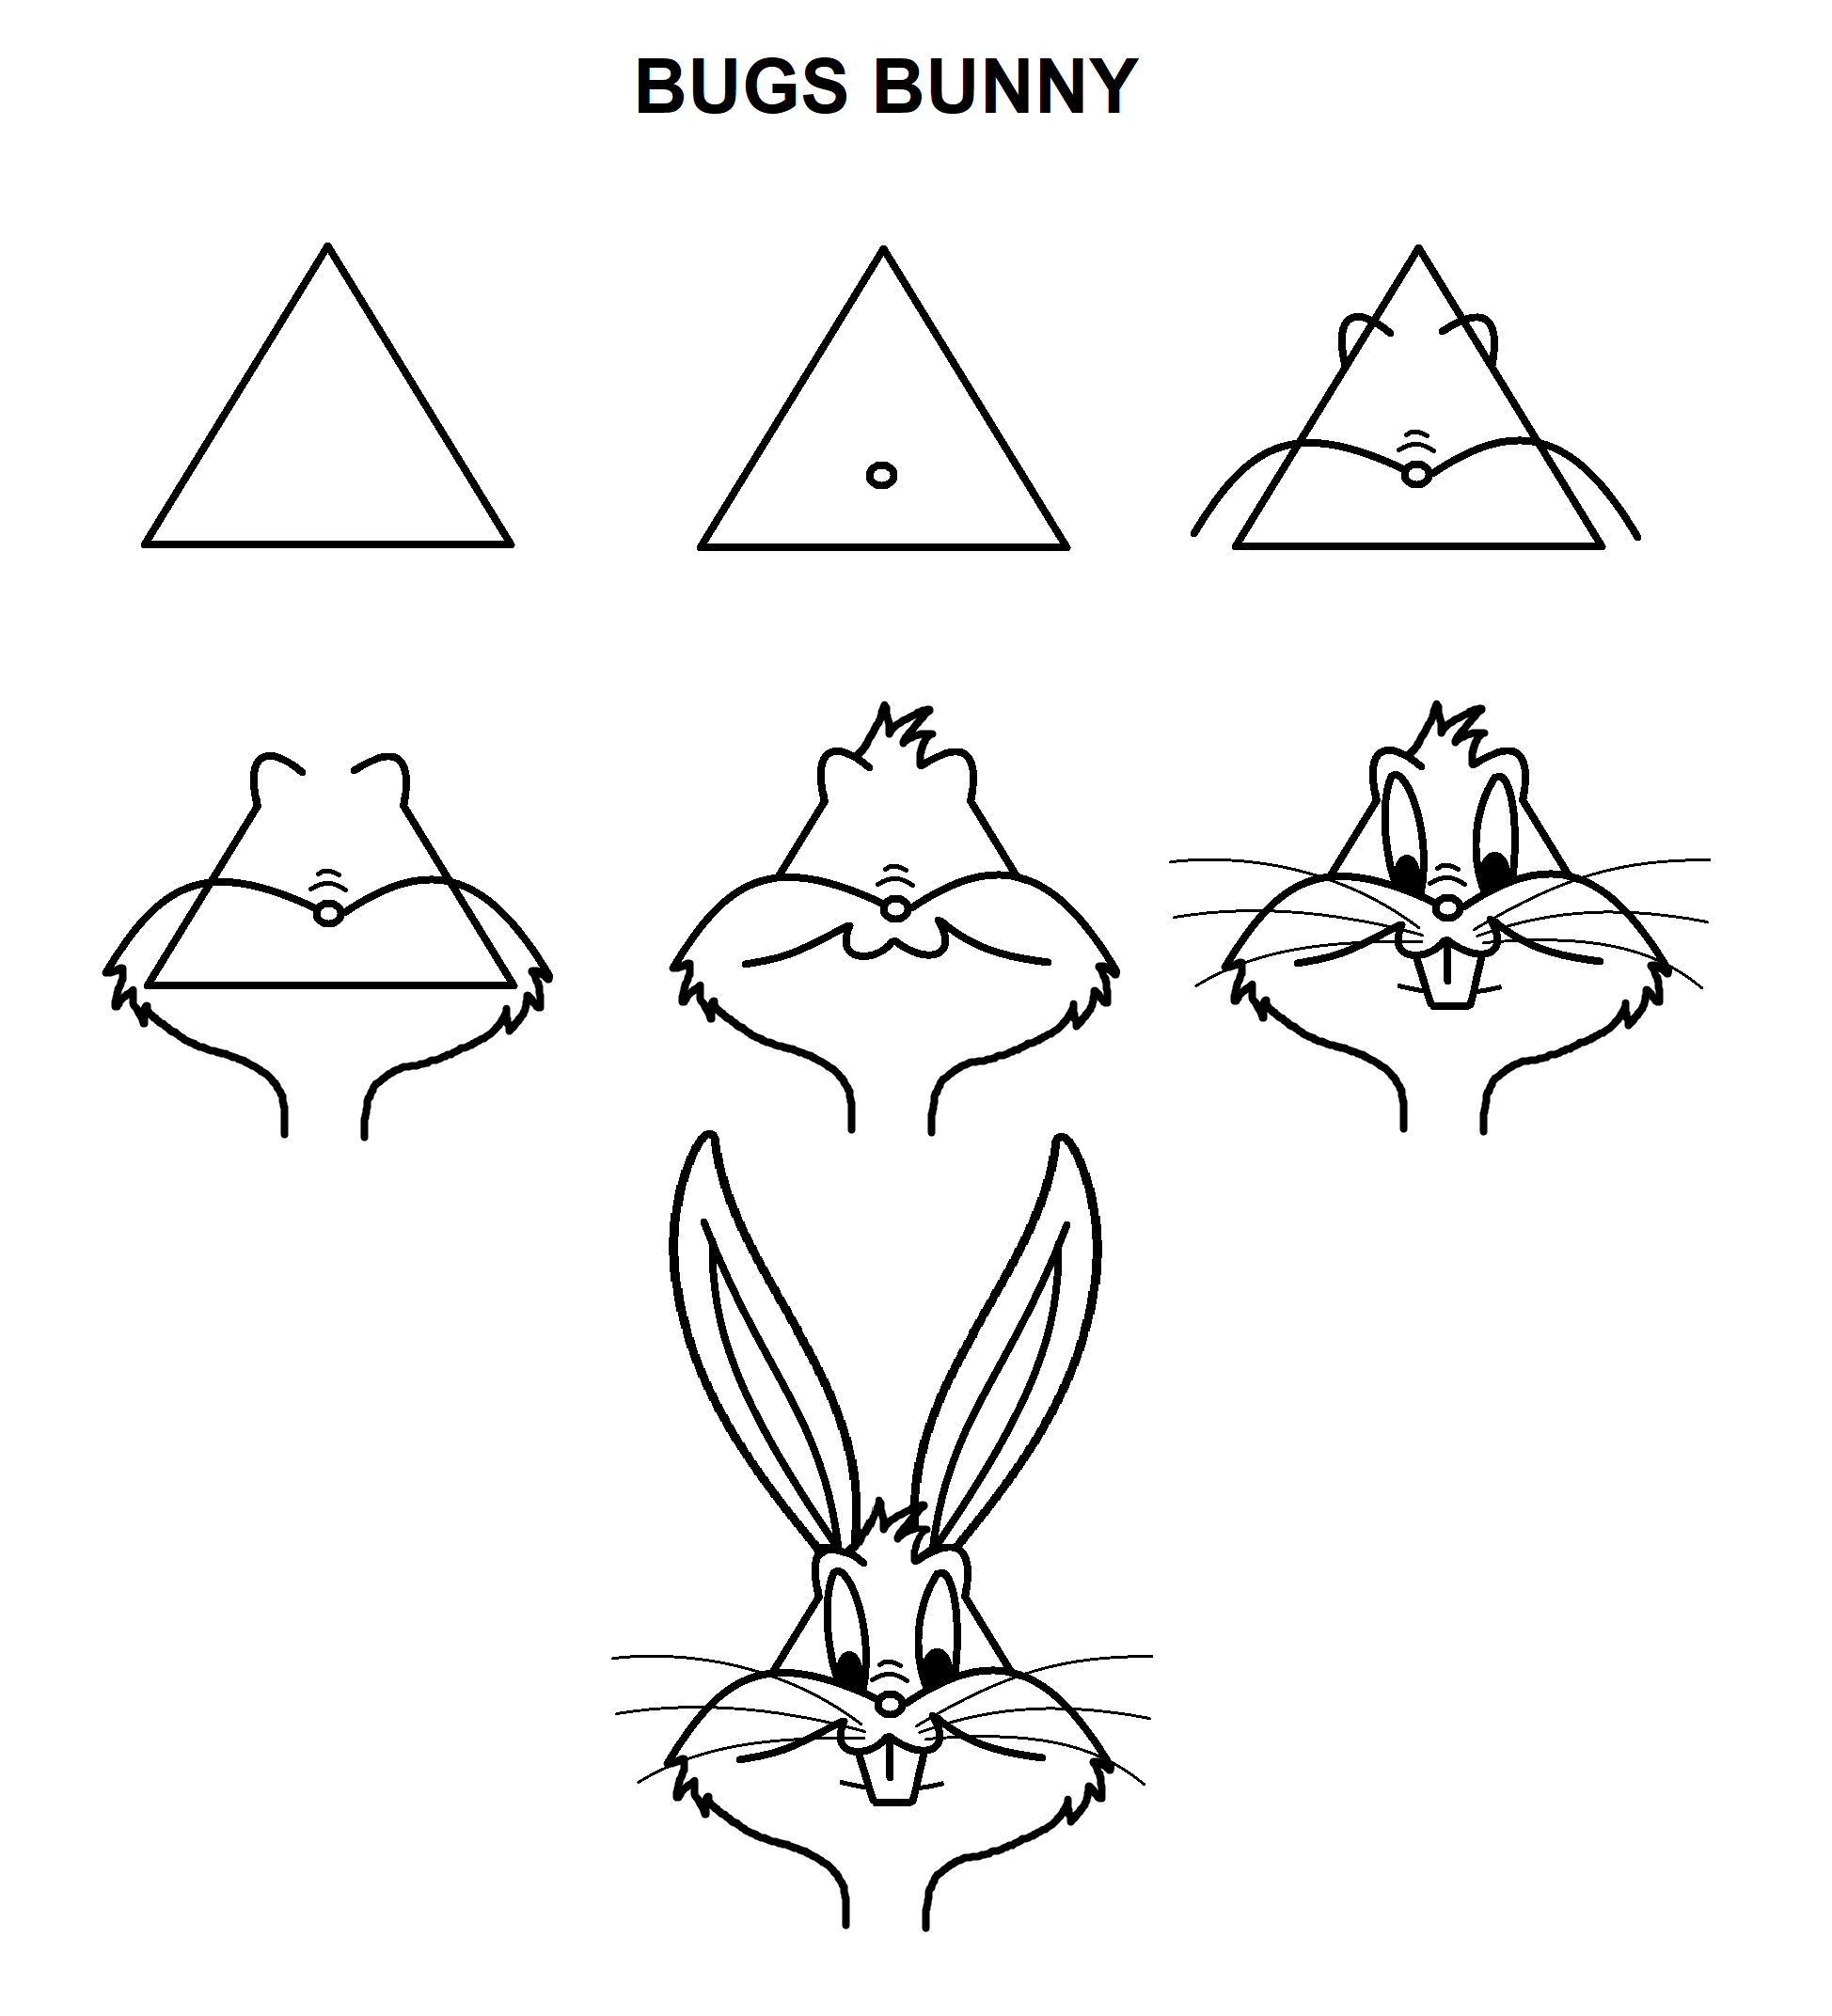 Bugs Bunny Bugs Bunny Drawing Bunny Drawing Bugs Drawing Personalize it with photos & text or purchase as is! bugs bunny bugs bunny drawing bunny